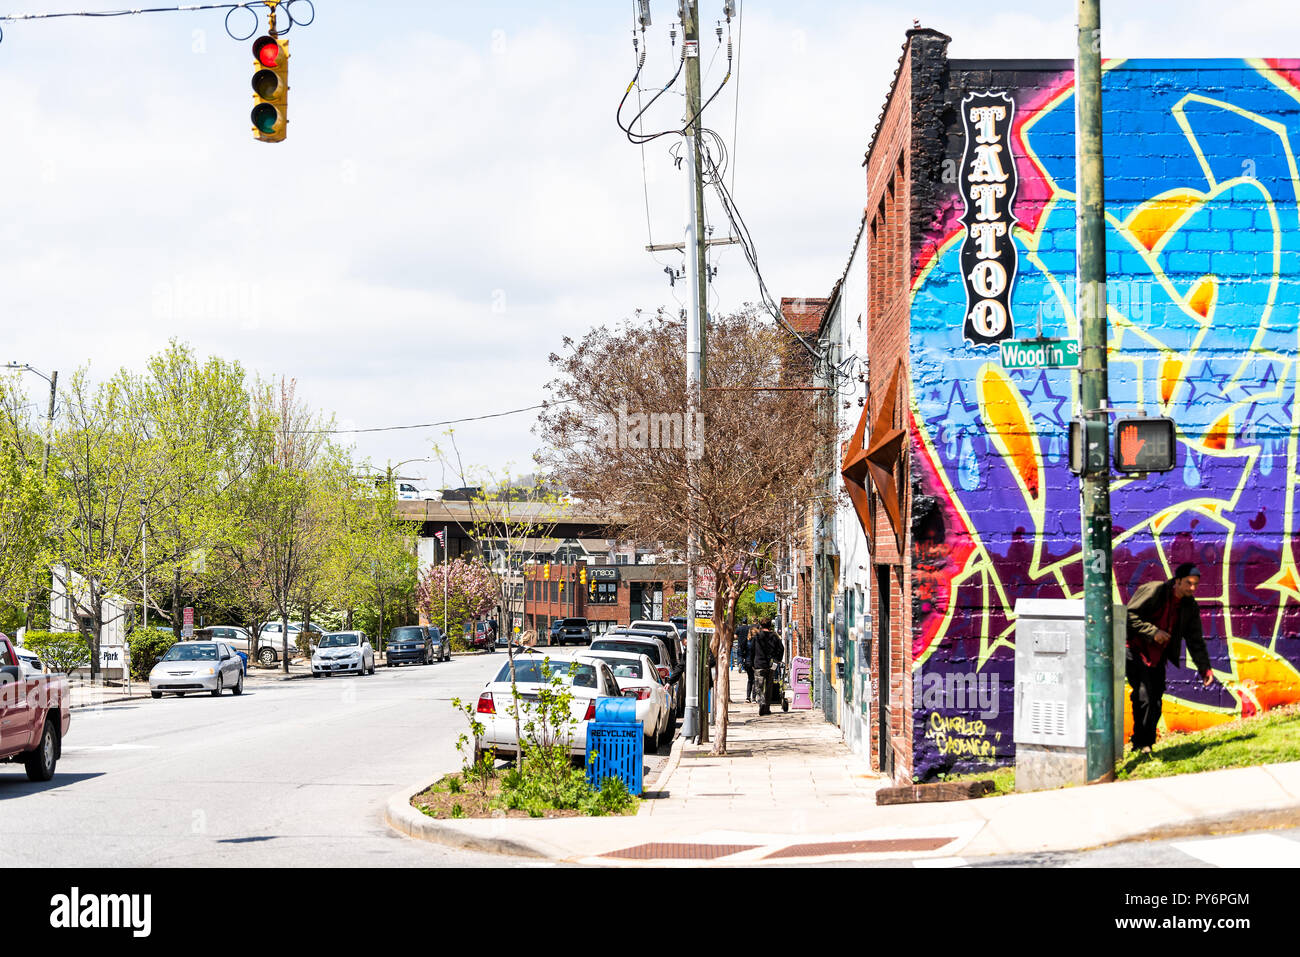 Asheville, USA - April 19, 2018: Colorful Tattoo tattooing and piercing store, shop, in downtown on Woodfin Street - Stock Image